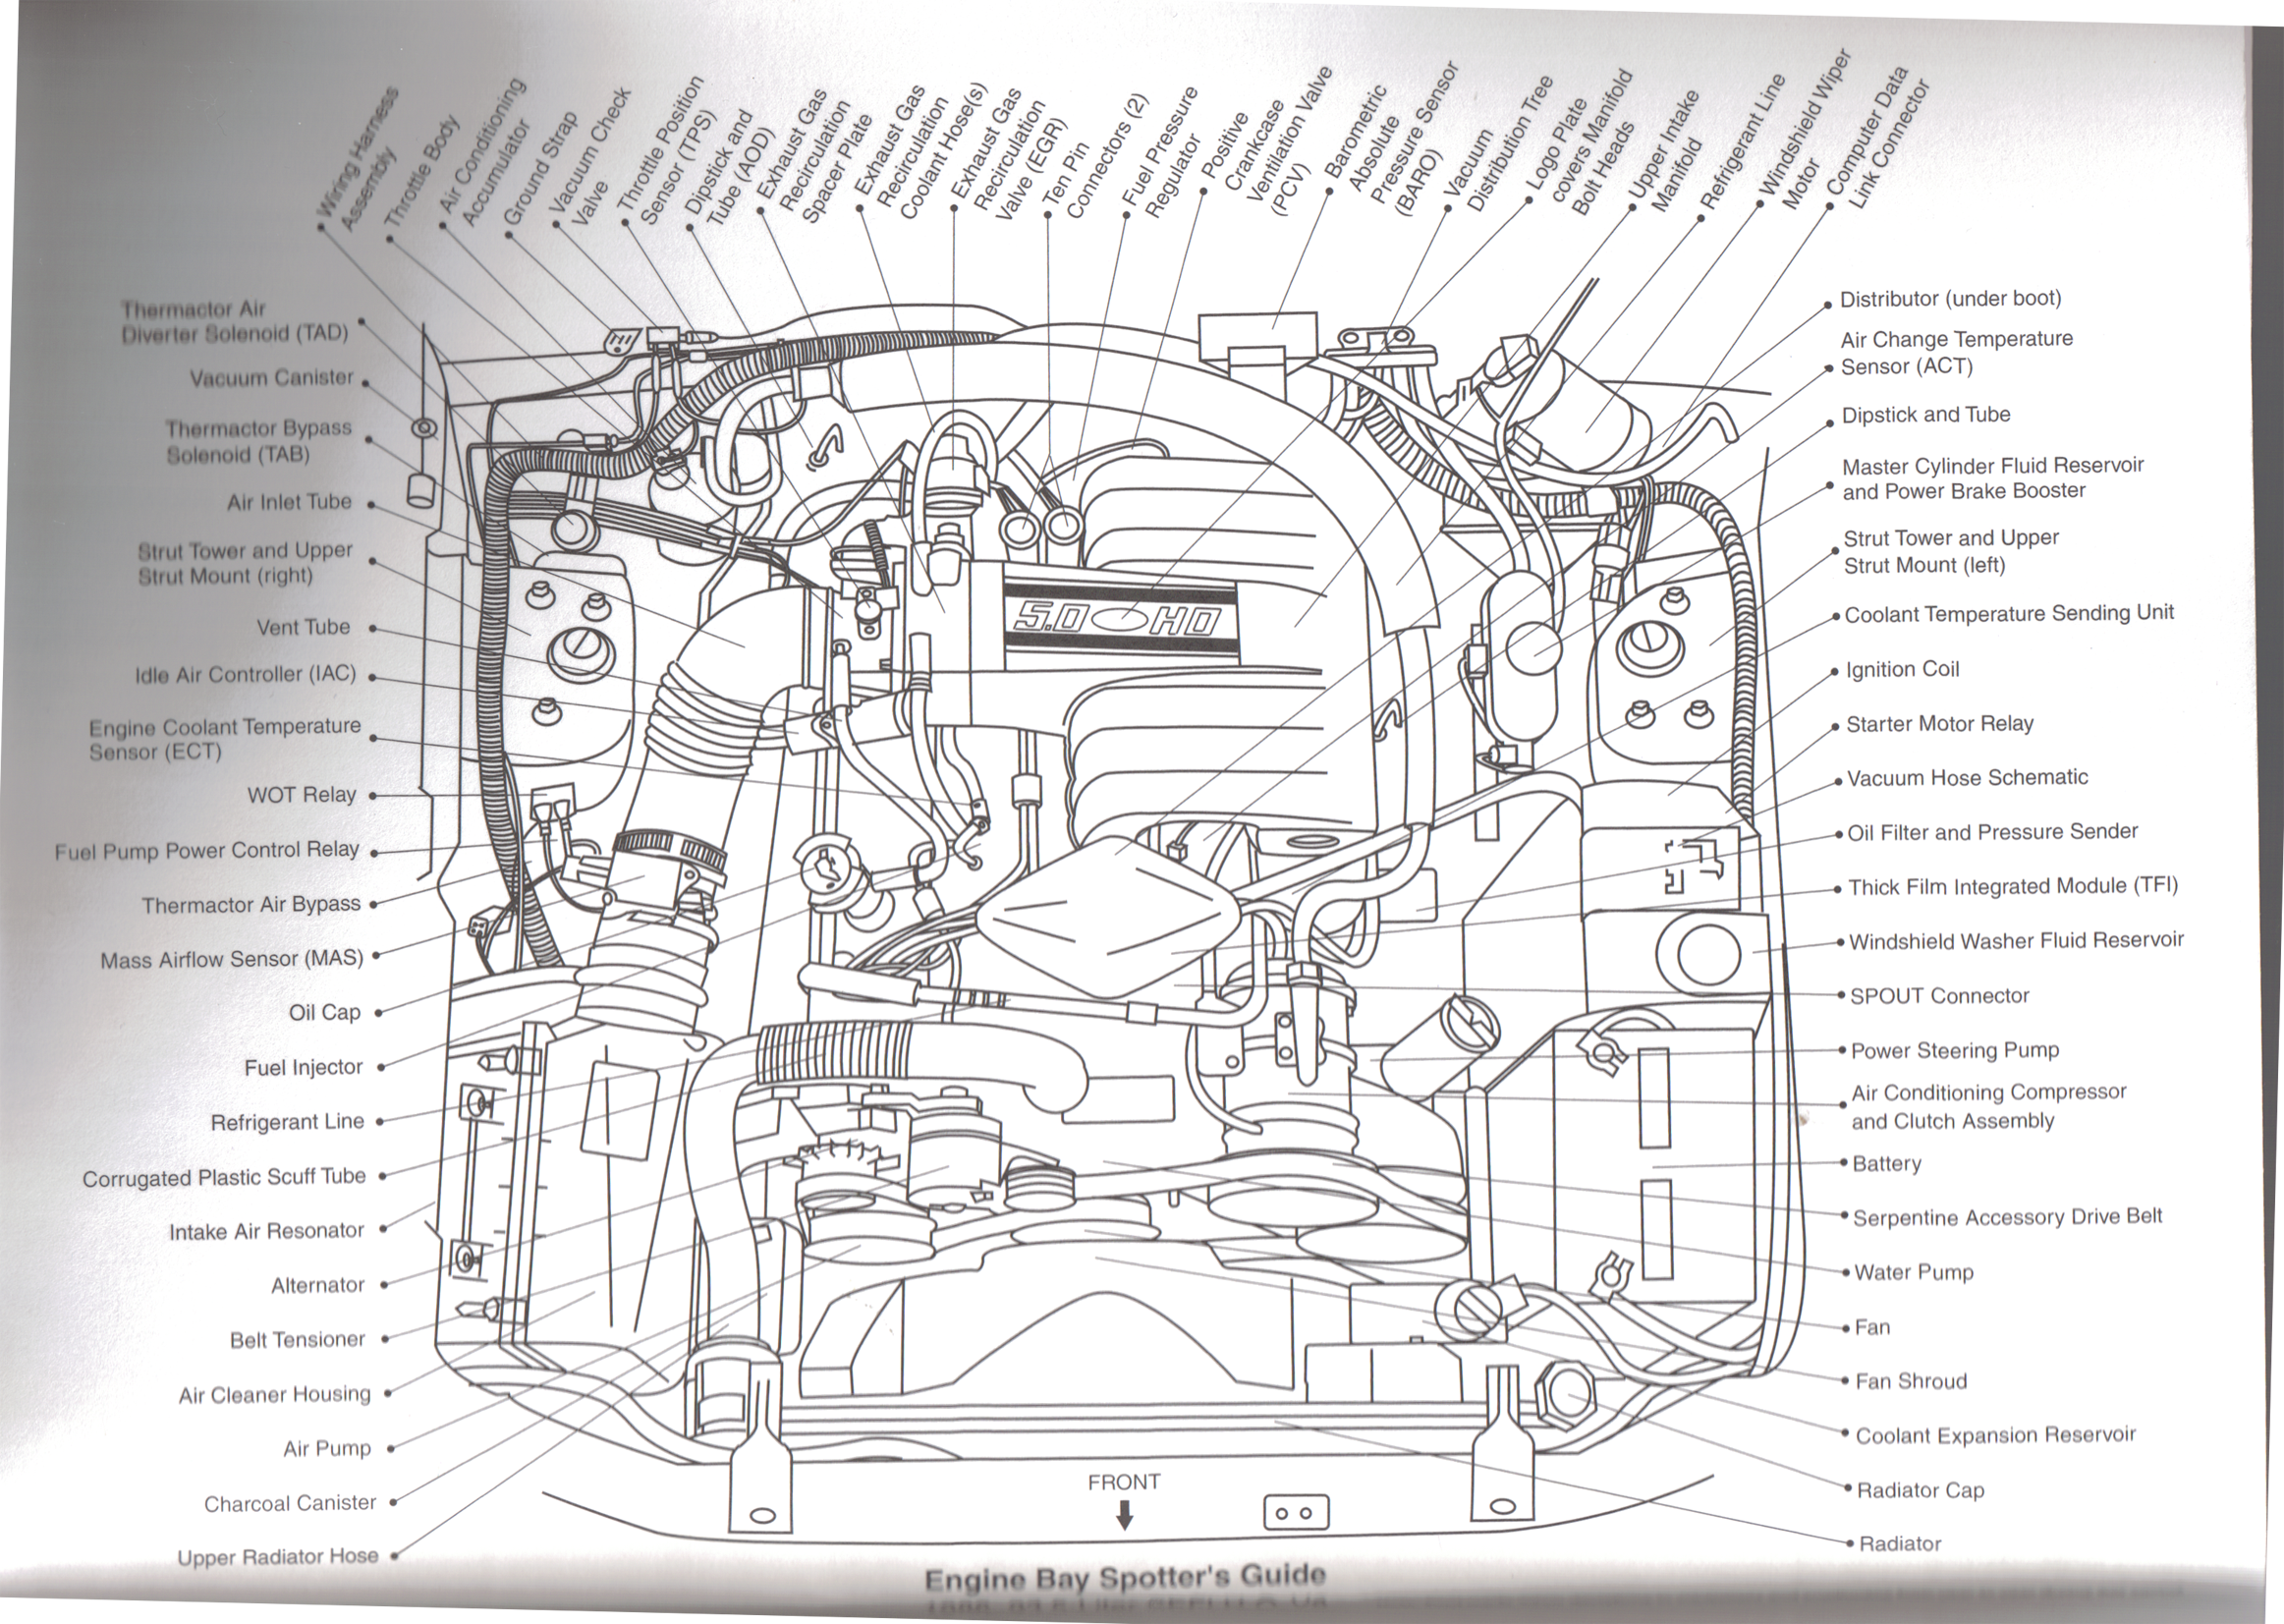 Ford Mustang V8 Engine Diagram Wiring Library. 19871993 Foxbody 50 Sefi V8 Engine Part Diagram. Wiring. Coyote Swap Wire Diagram At Scoala.co